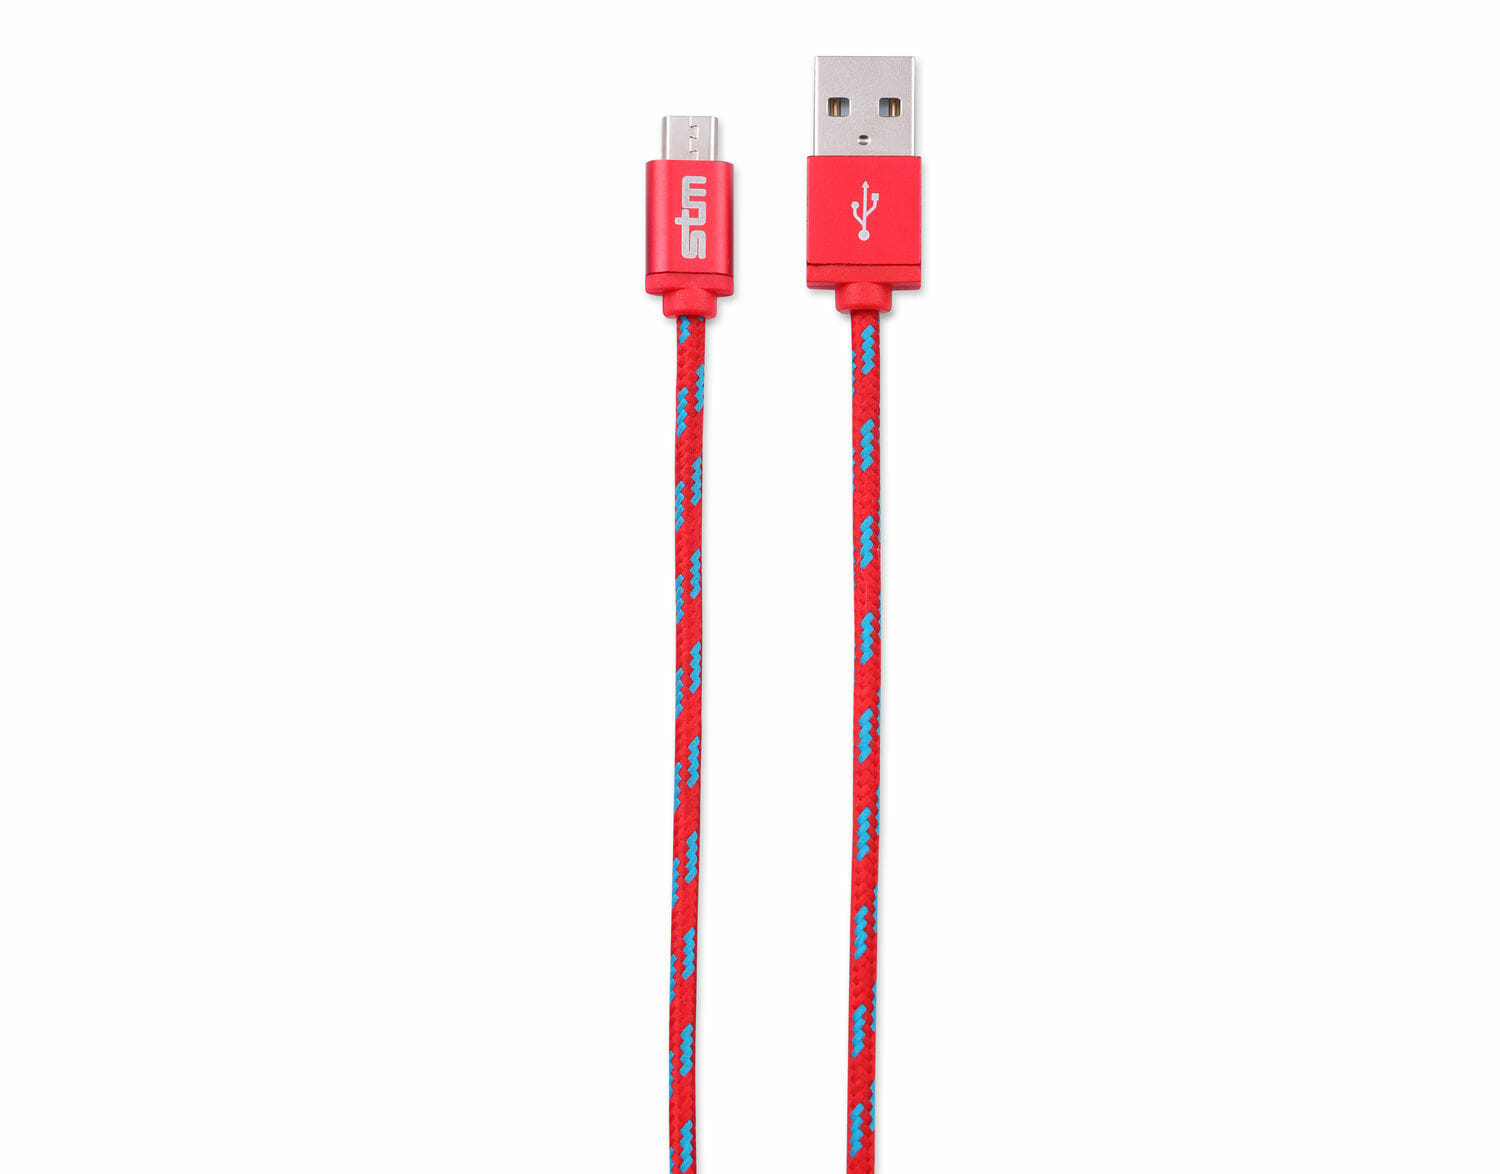 Elite Series Micro Usb Sync Charge Cable (1 Meter) | Stm Goods Au - Wiring Diagram Flat Cord Micro Usb